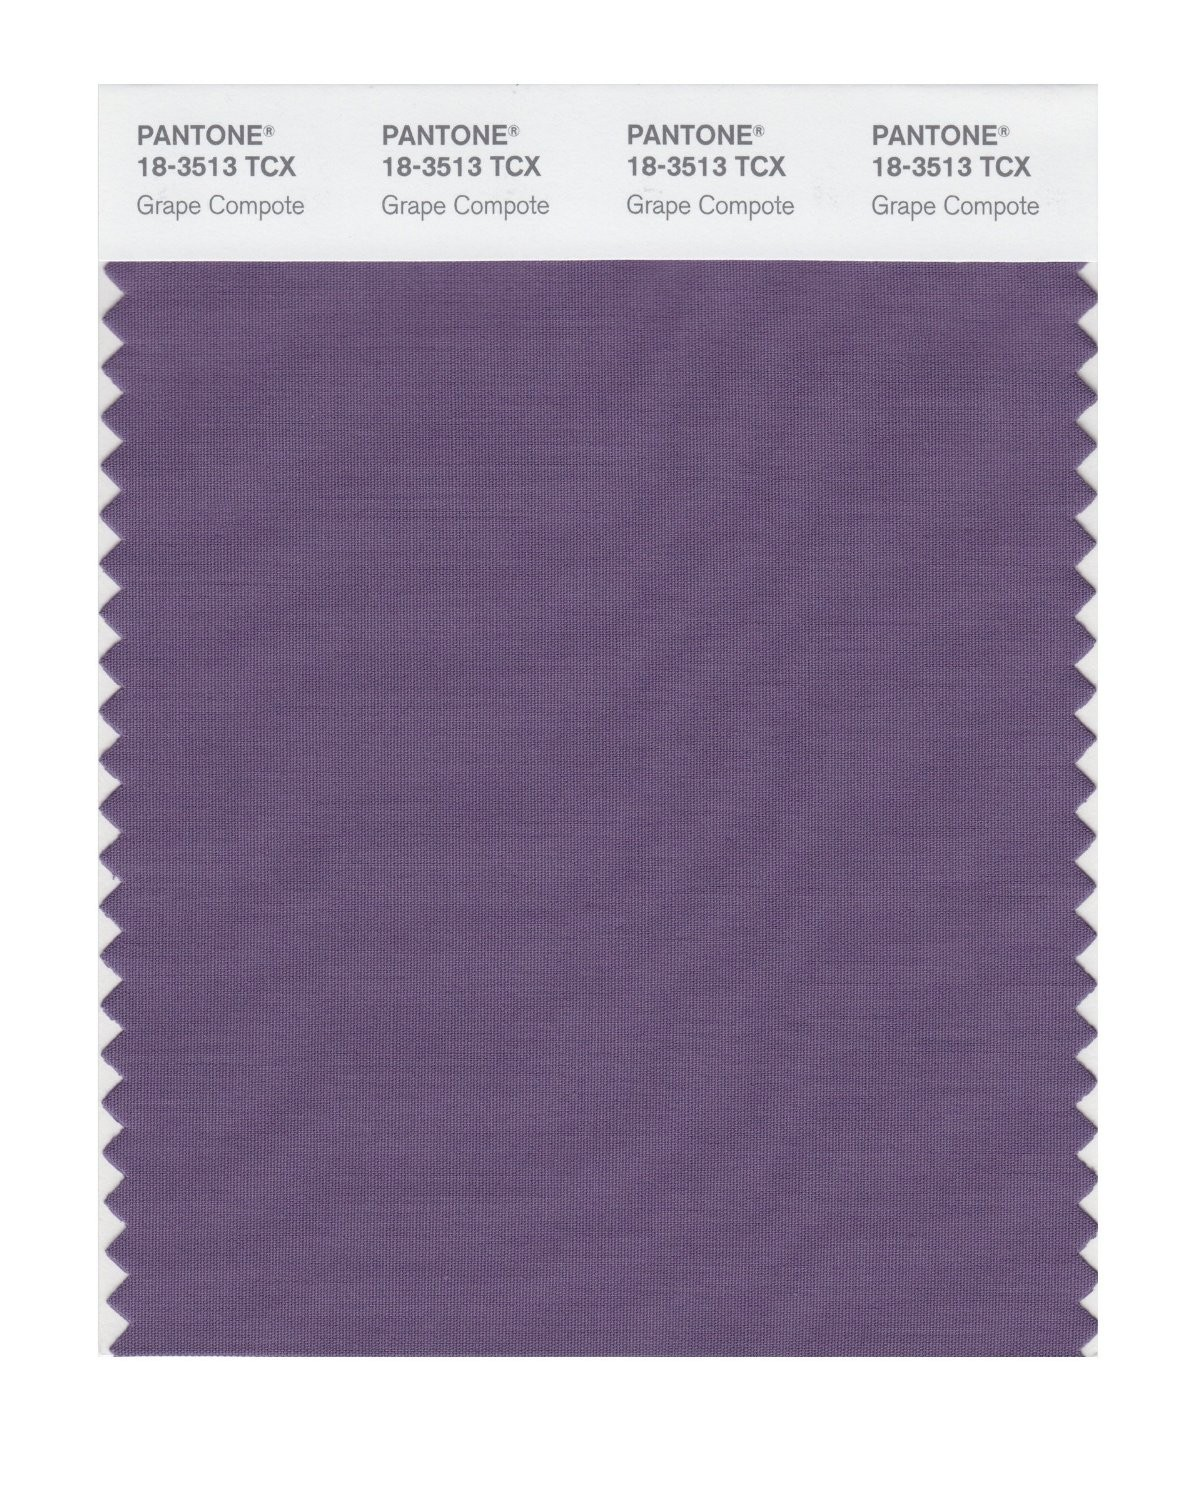 Pantone 18-3513 TCX Swatch Card Grape Compote